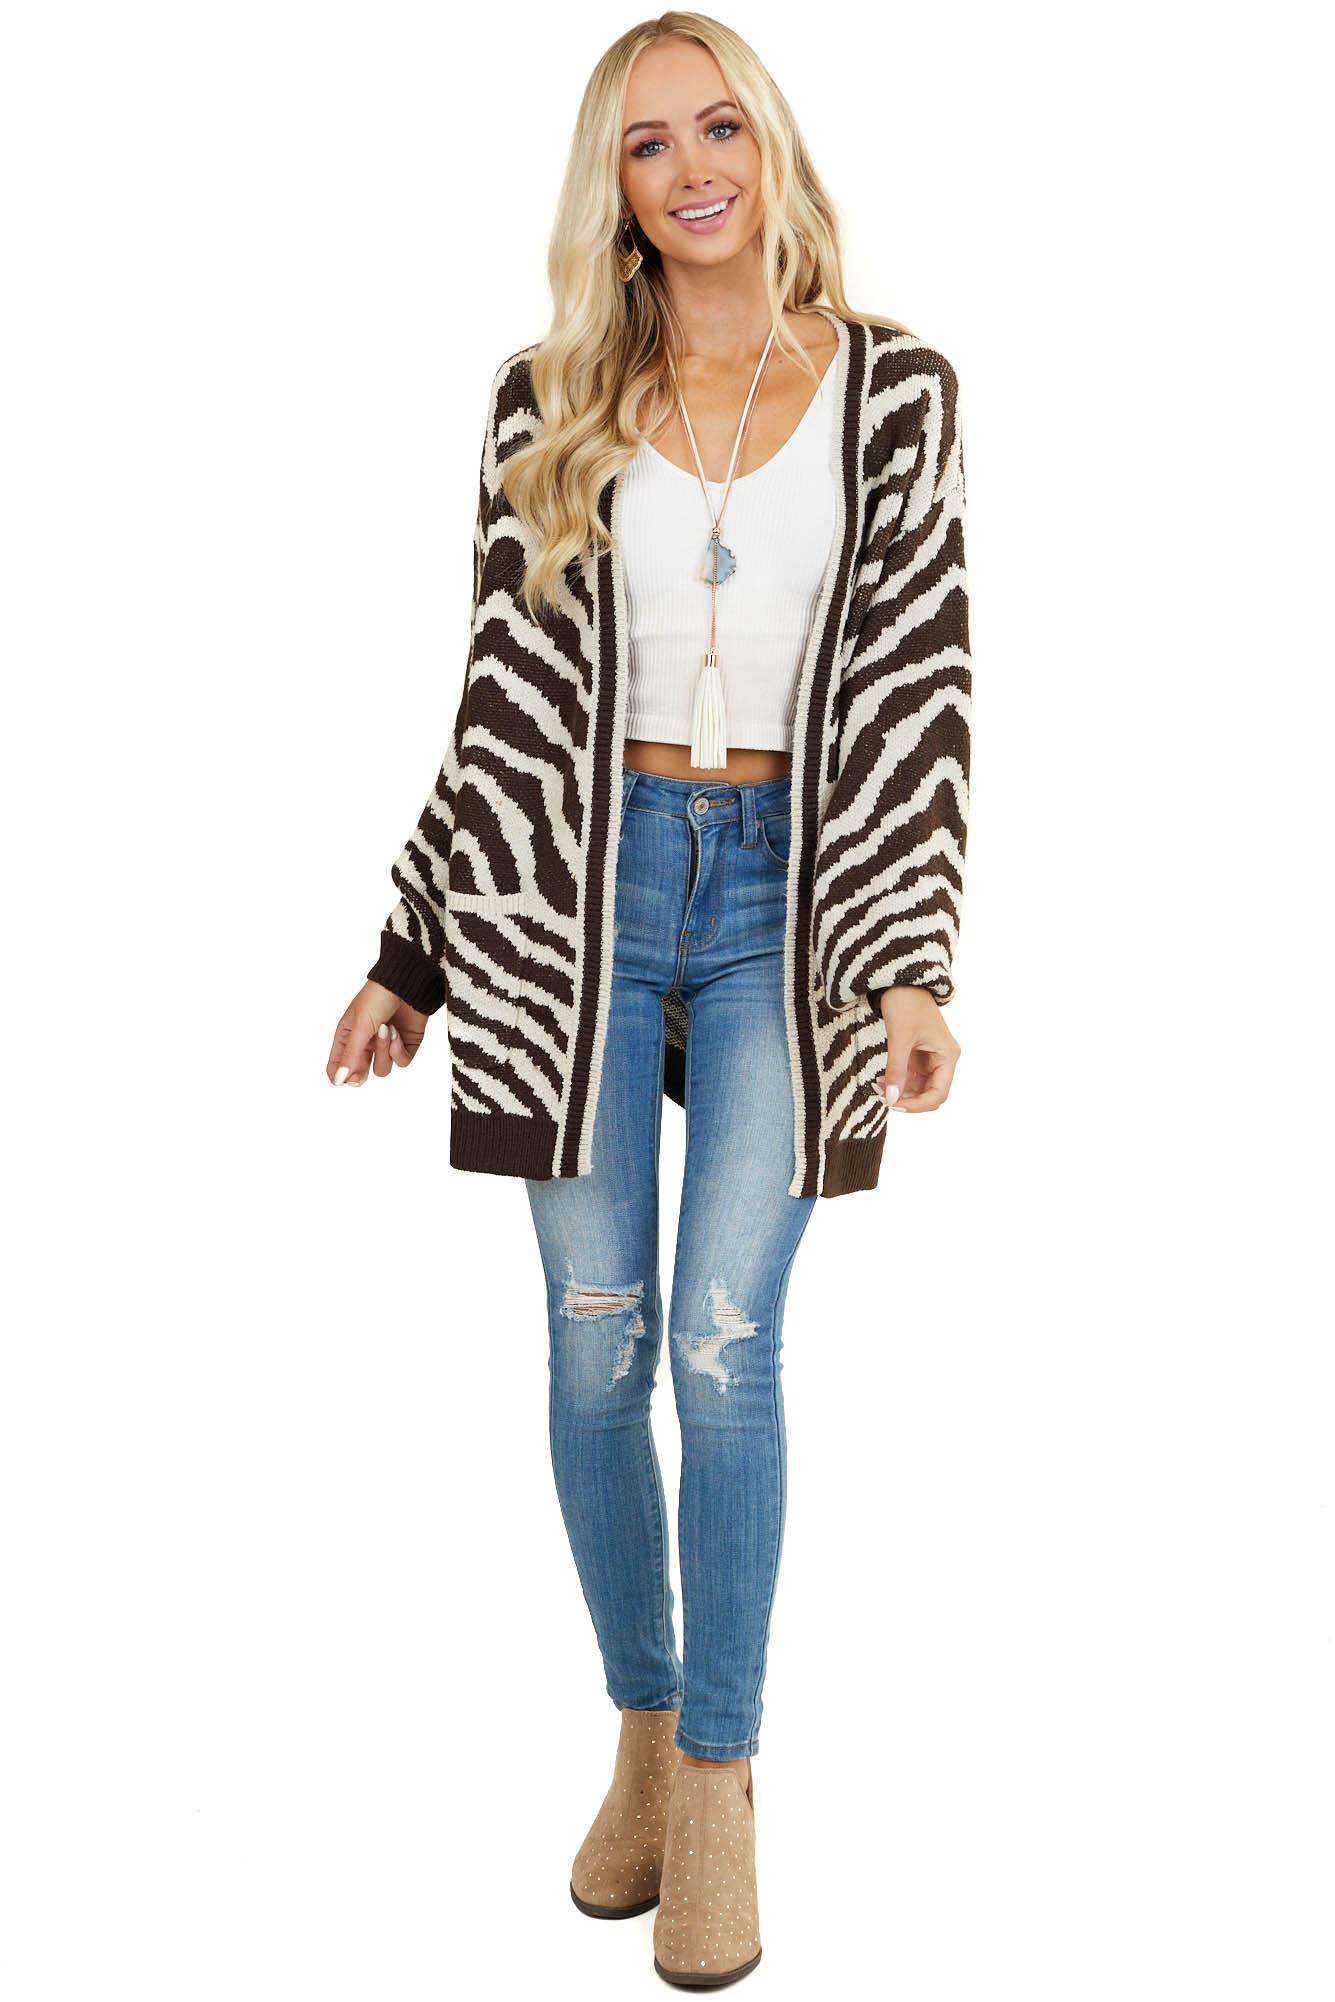 Oatmeal and Brown Zebra Sweater Cardigan with Pockets